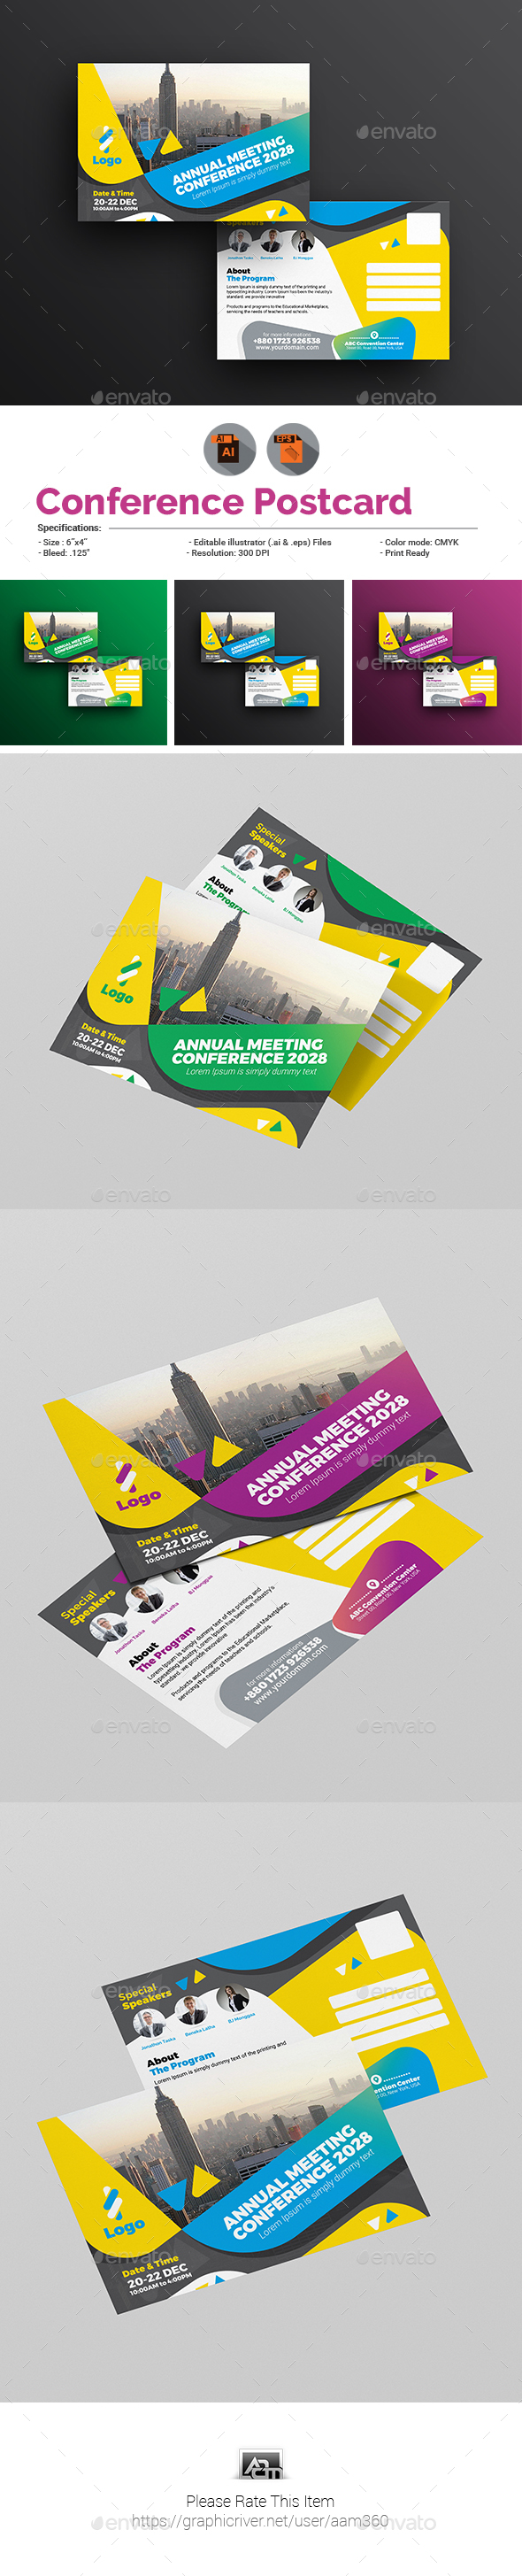 Event Summit Conference Postcard Template - Cards & Invites Print Templates